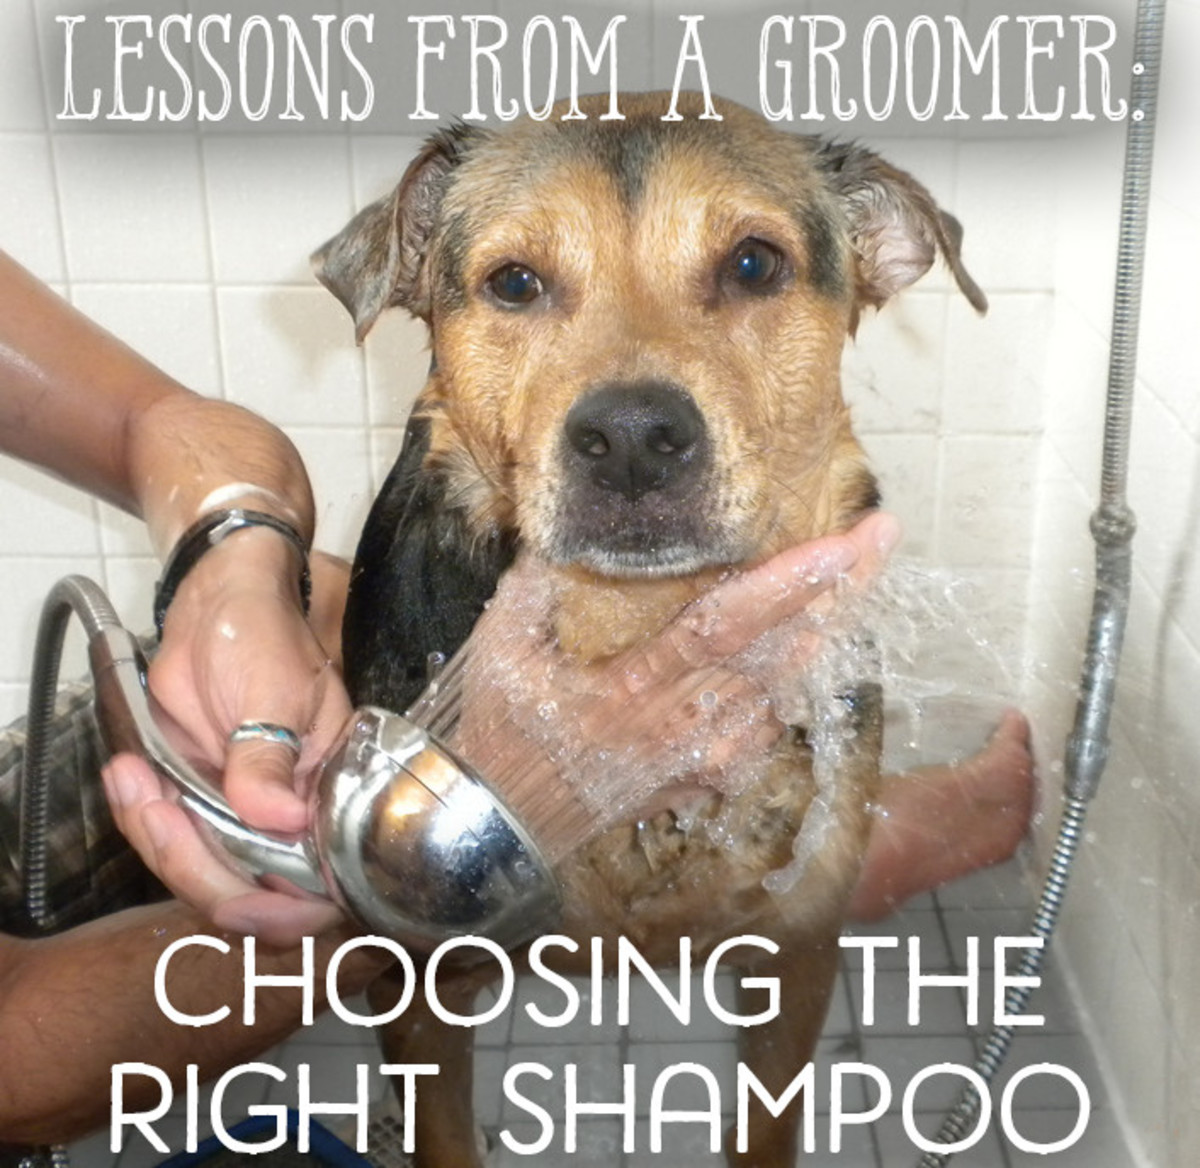 How to choose the shampoo that's best for your dog.